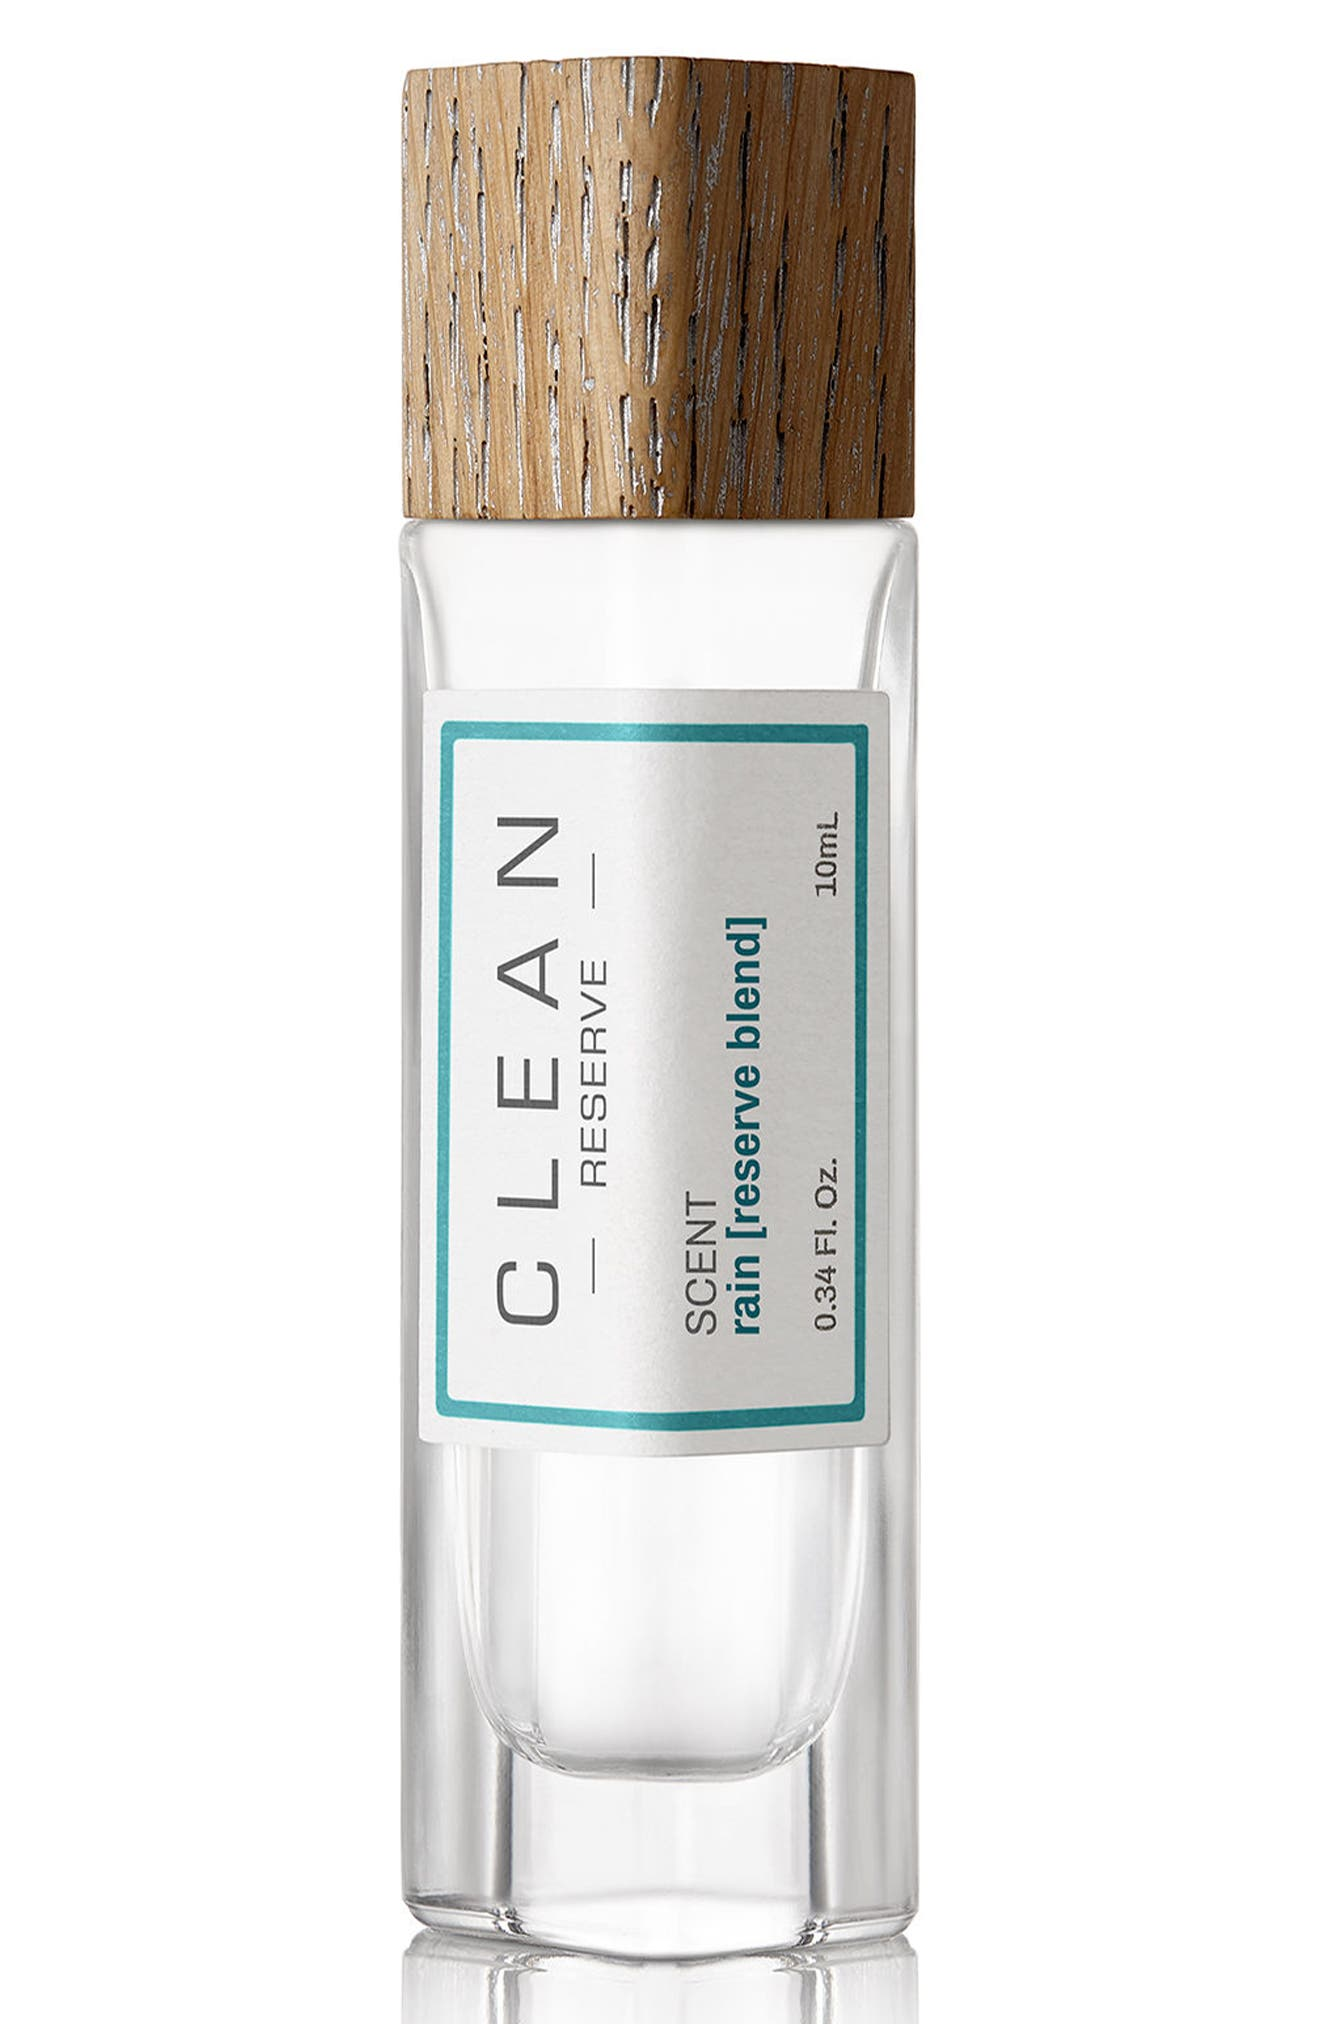 Main Image - Clean Reserve Reserve Blend Rain Pen Spray